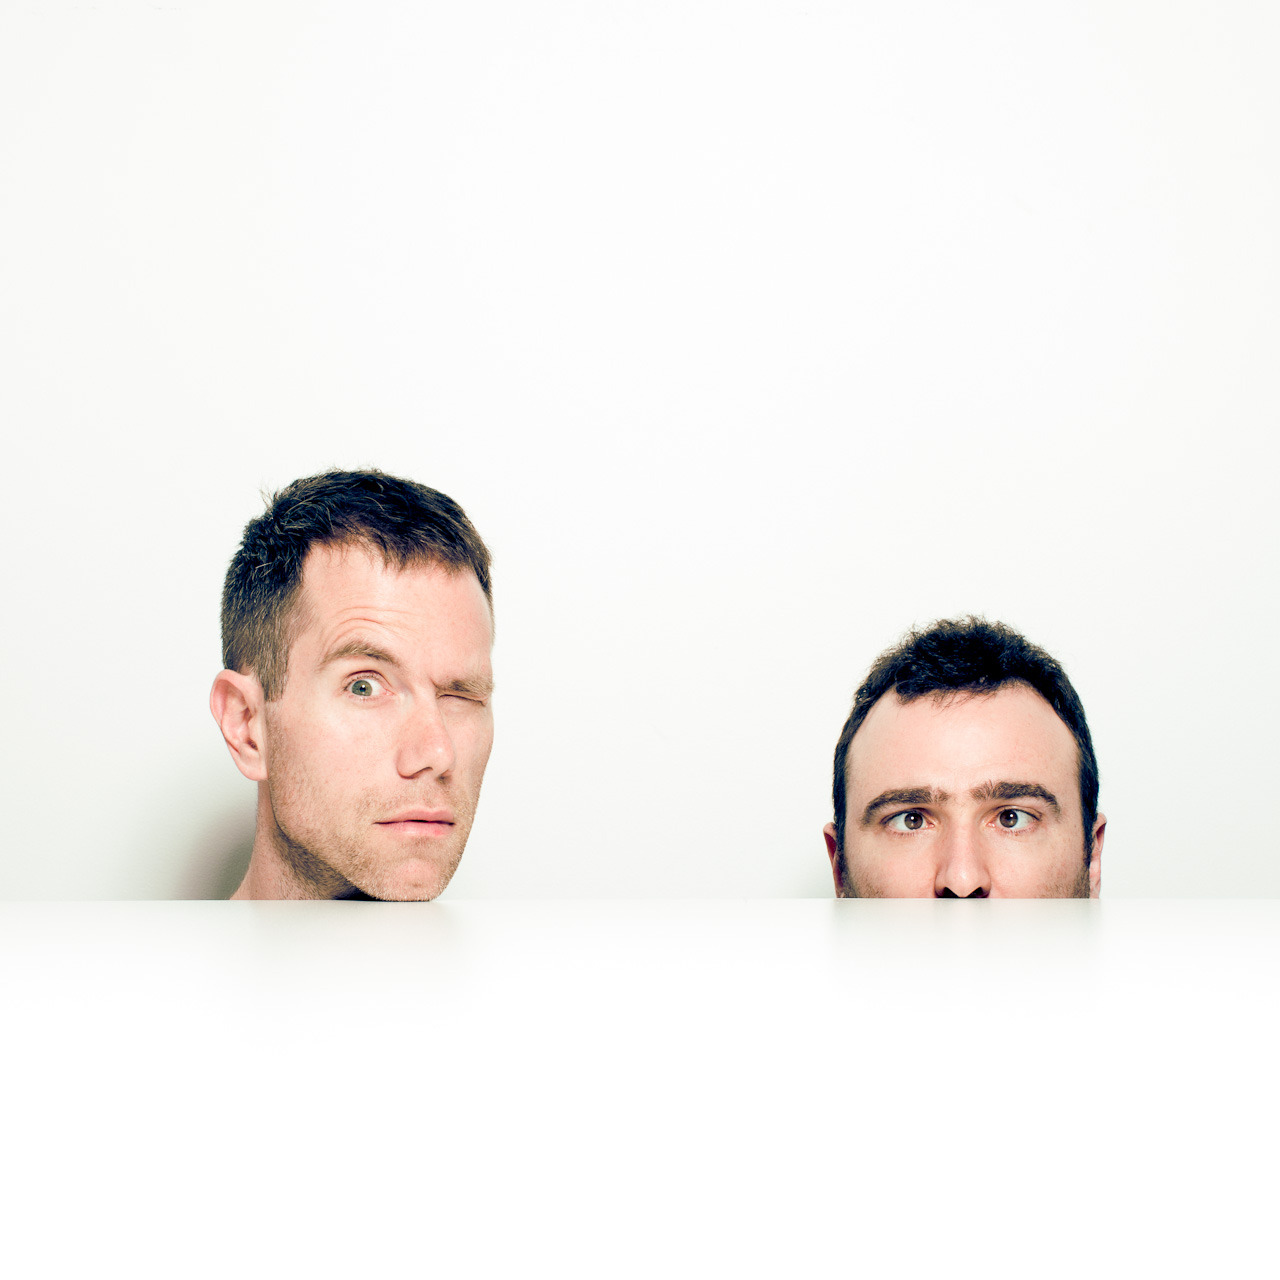 The Presets shot at Modular HQ for Time Out Sydney, to co-incide with the launch of their new record Pacifica.